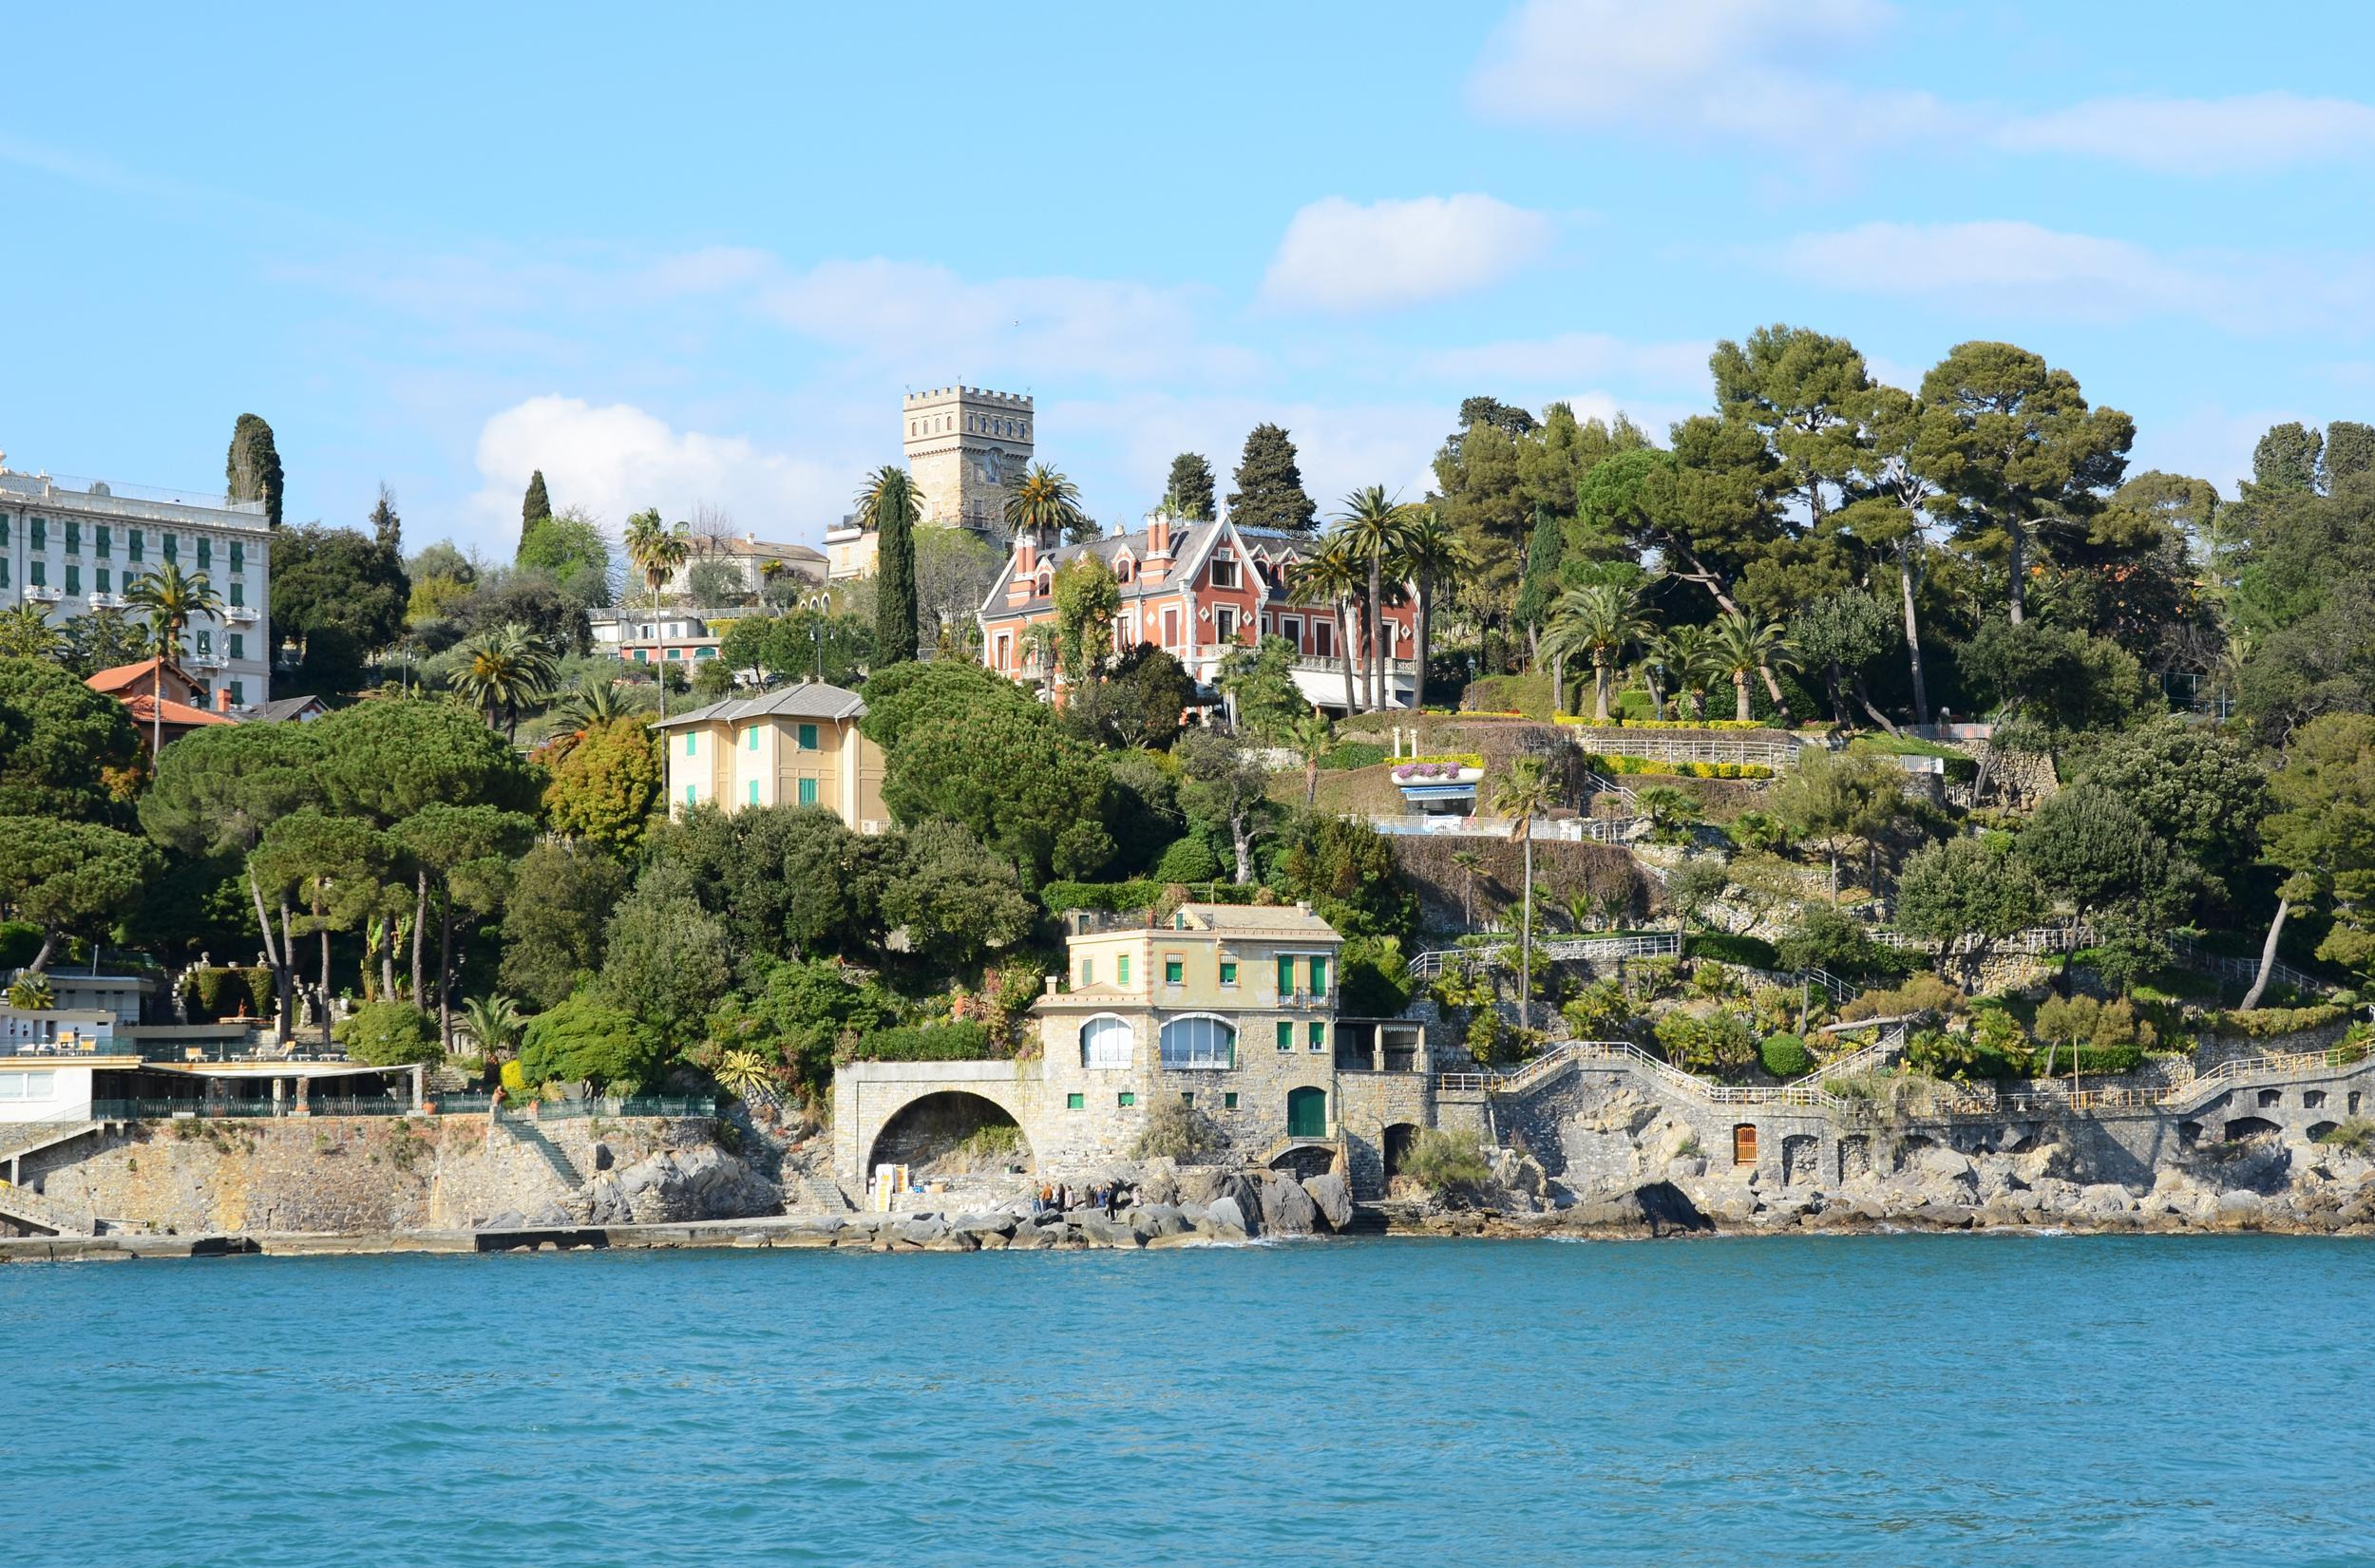 How to Spend 2 Days in La Spezia